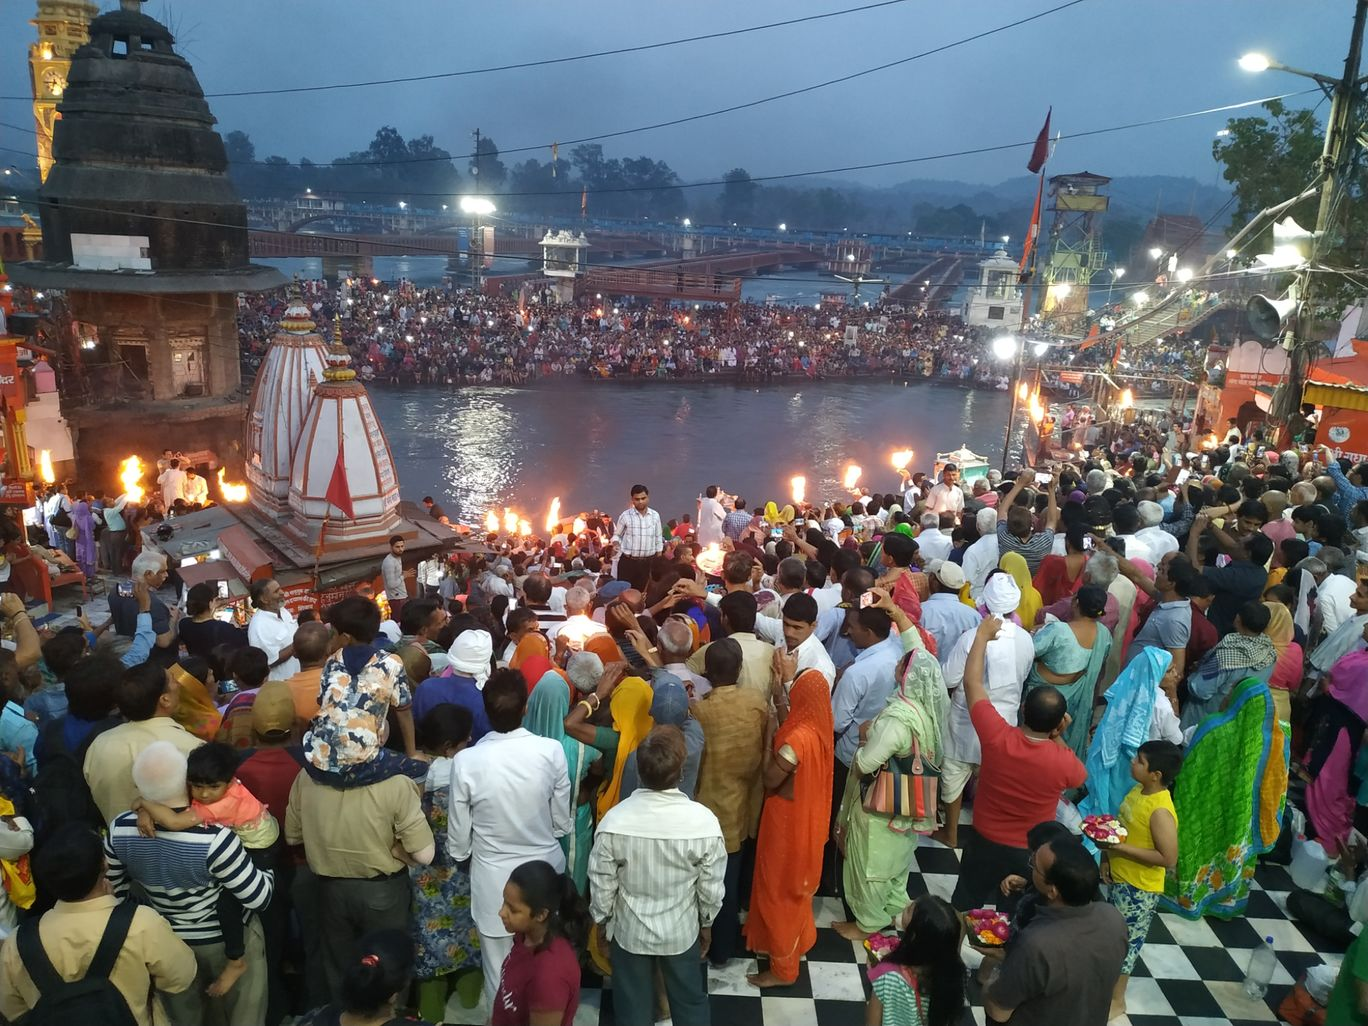 Photo of Har Ki Pauri Ghat By Divya sheth